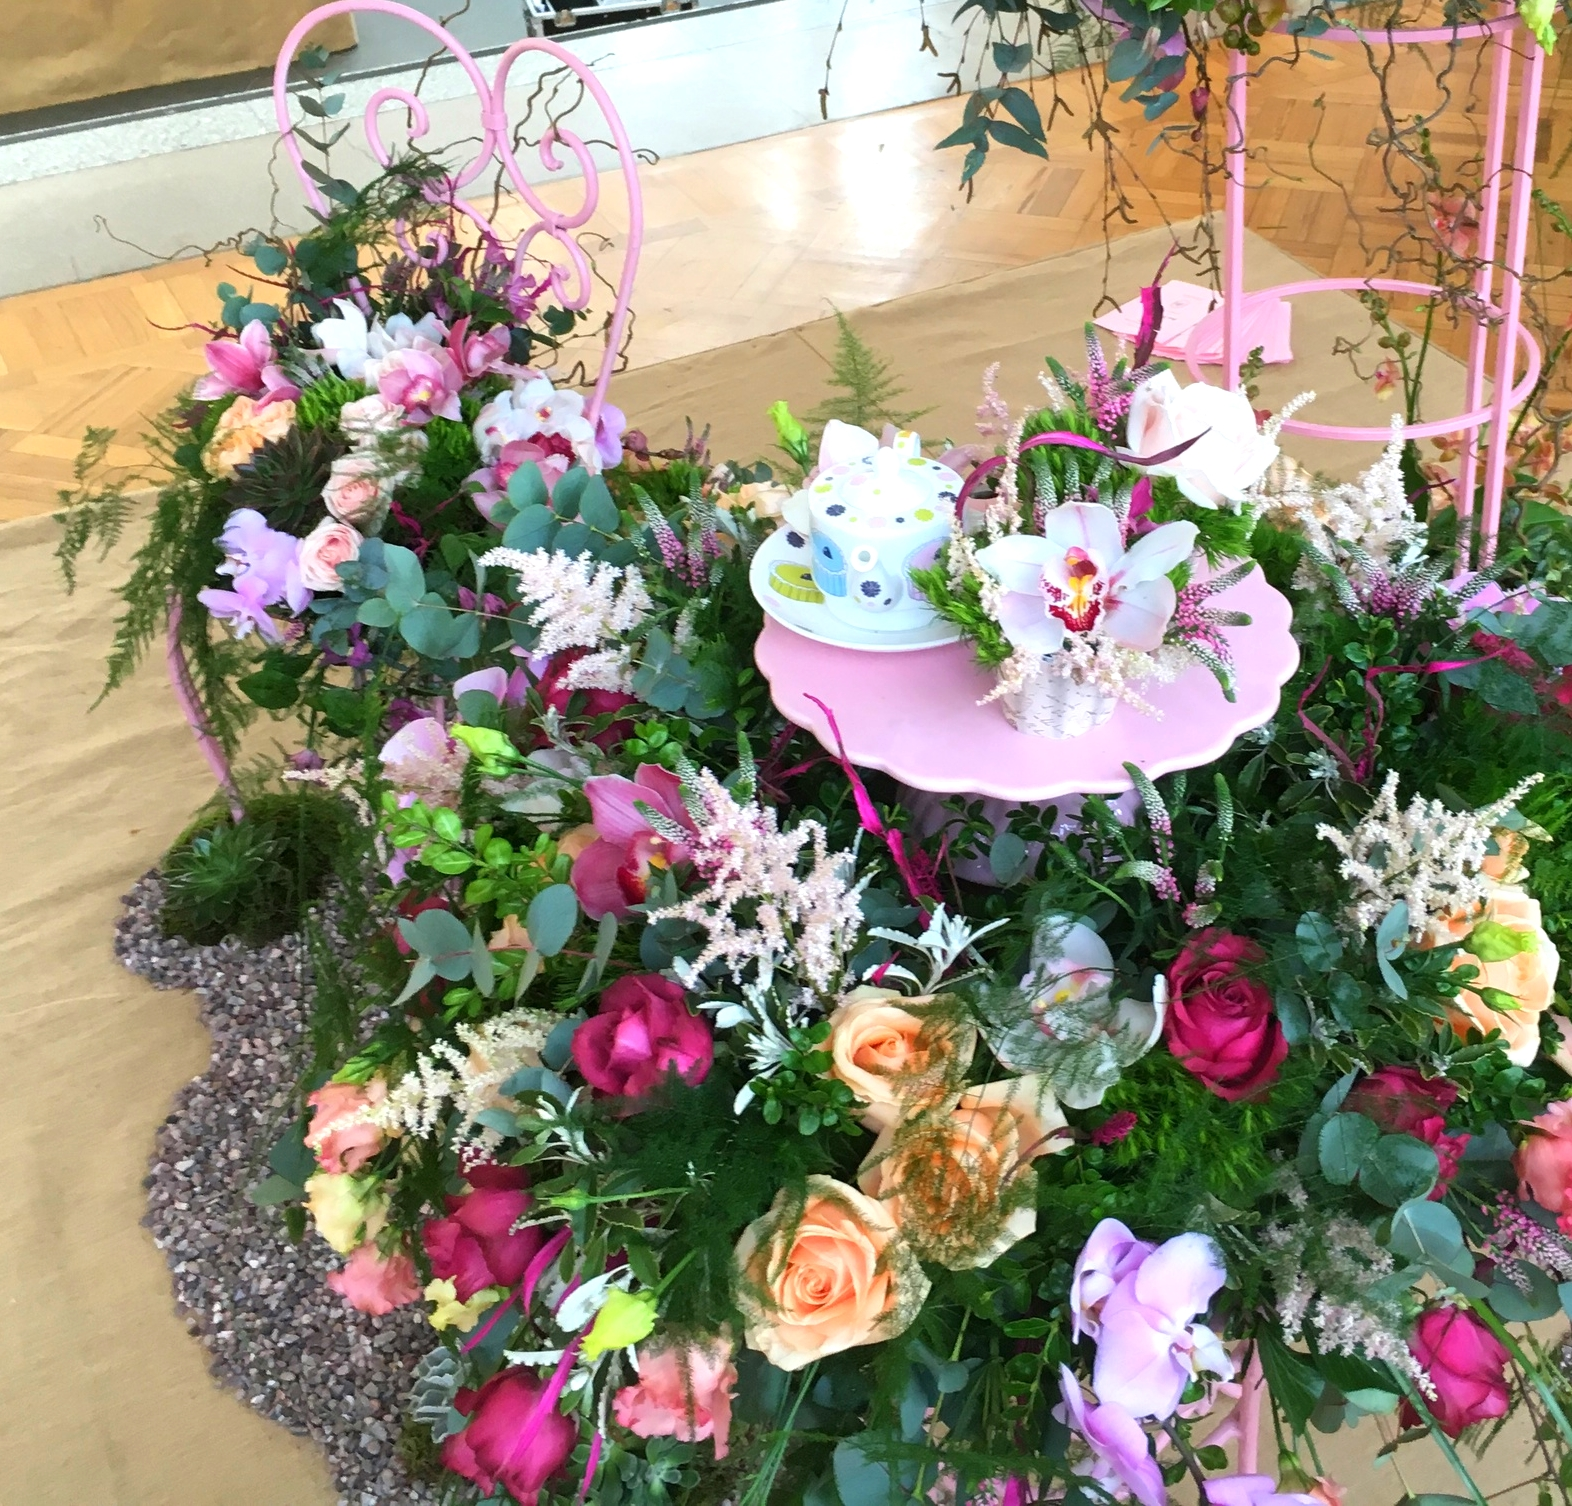 A charming floral exhibit from NAFAS at the RHS London Show.